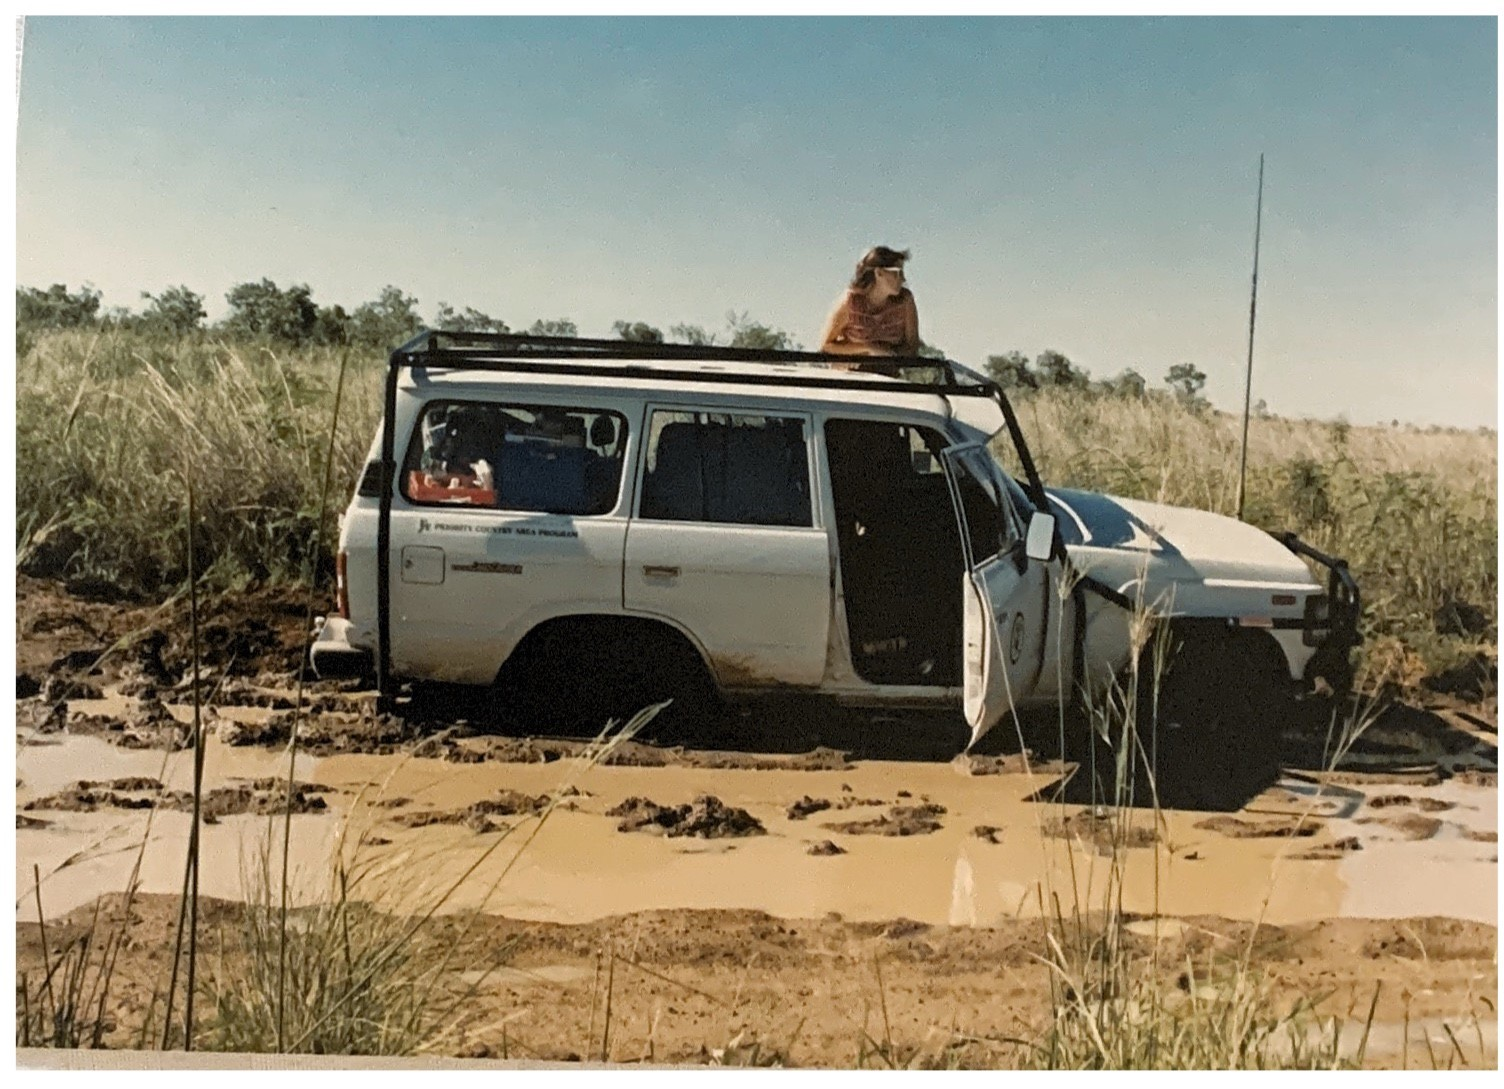 A woman leans out of a bogged car